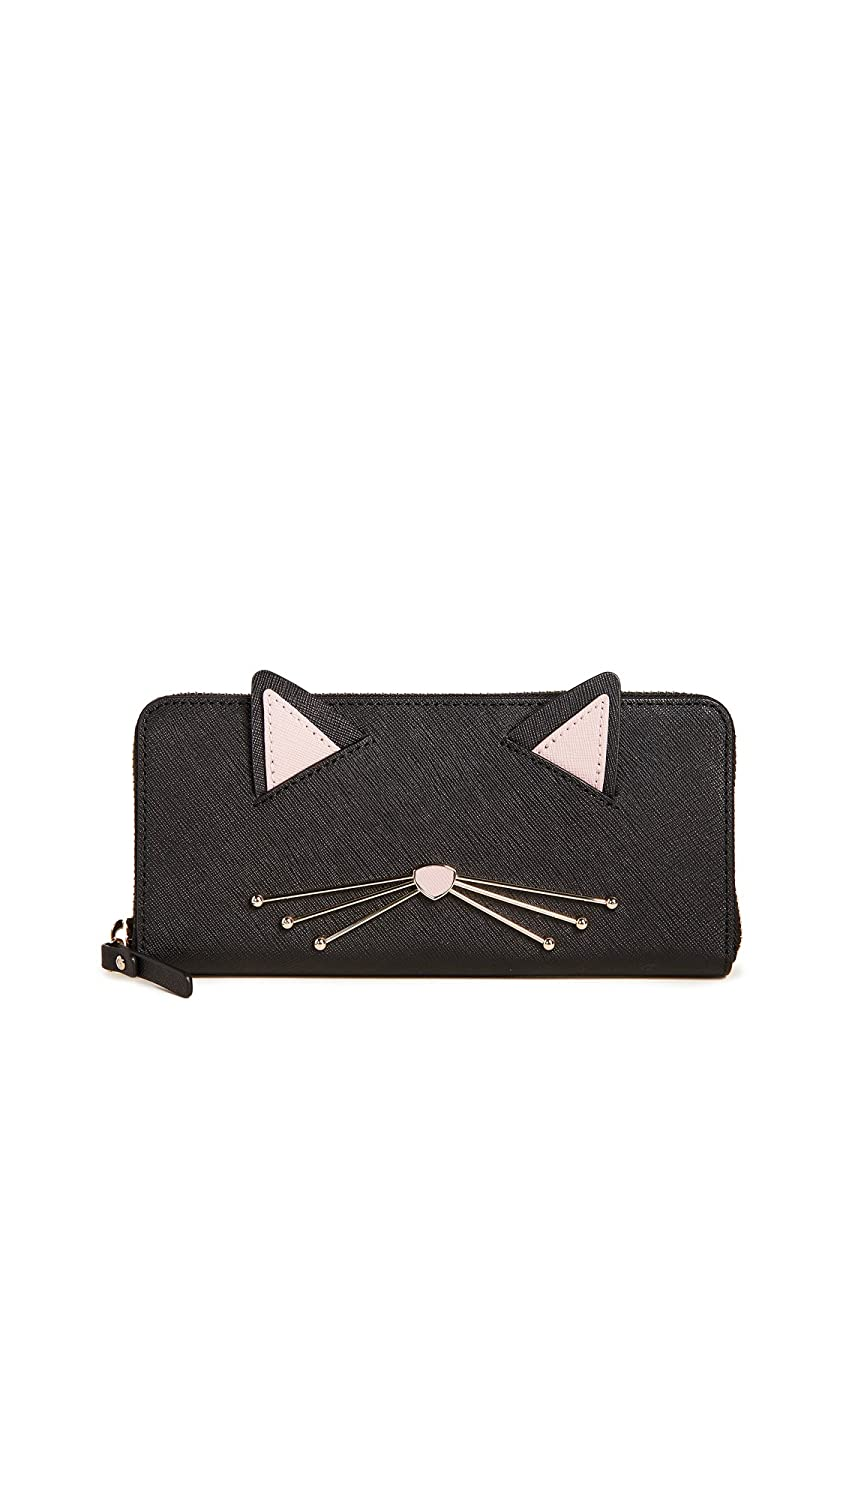 f5cd3965dbf5 Amazon.com: Kate Spade New York Women's Cat's Meow Lindsey Cat Wallet, Black  Multi, One Size: Shoes